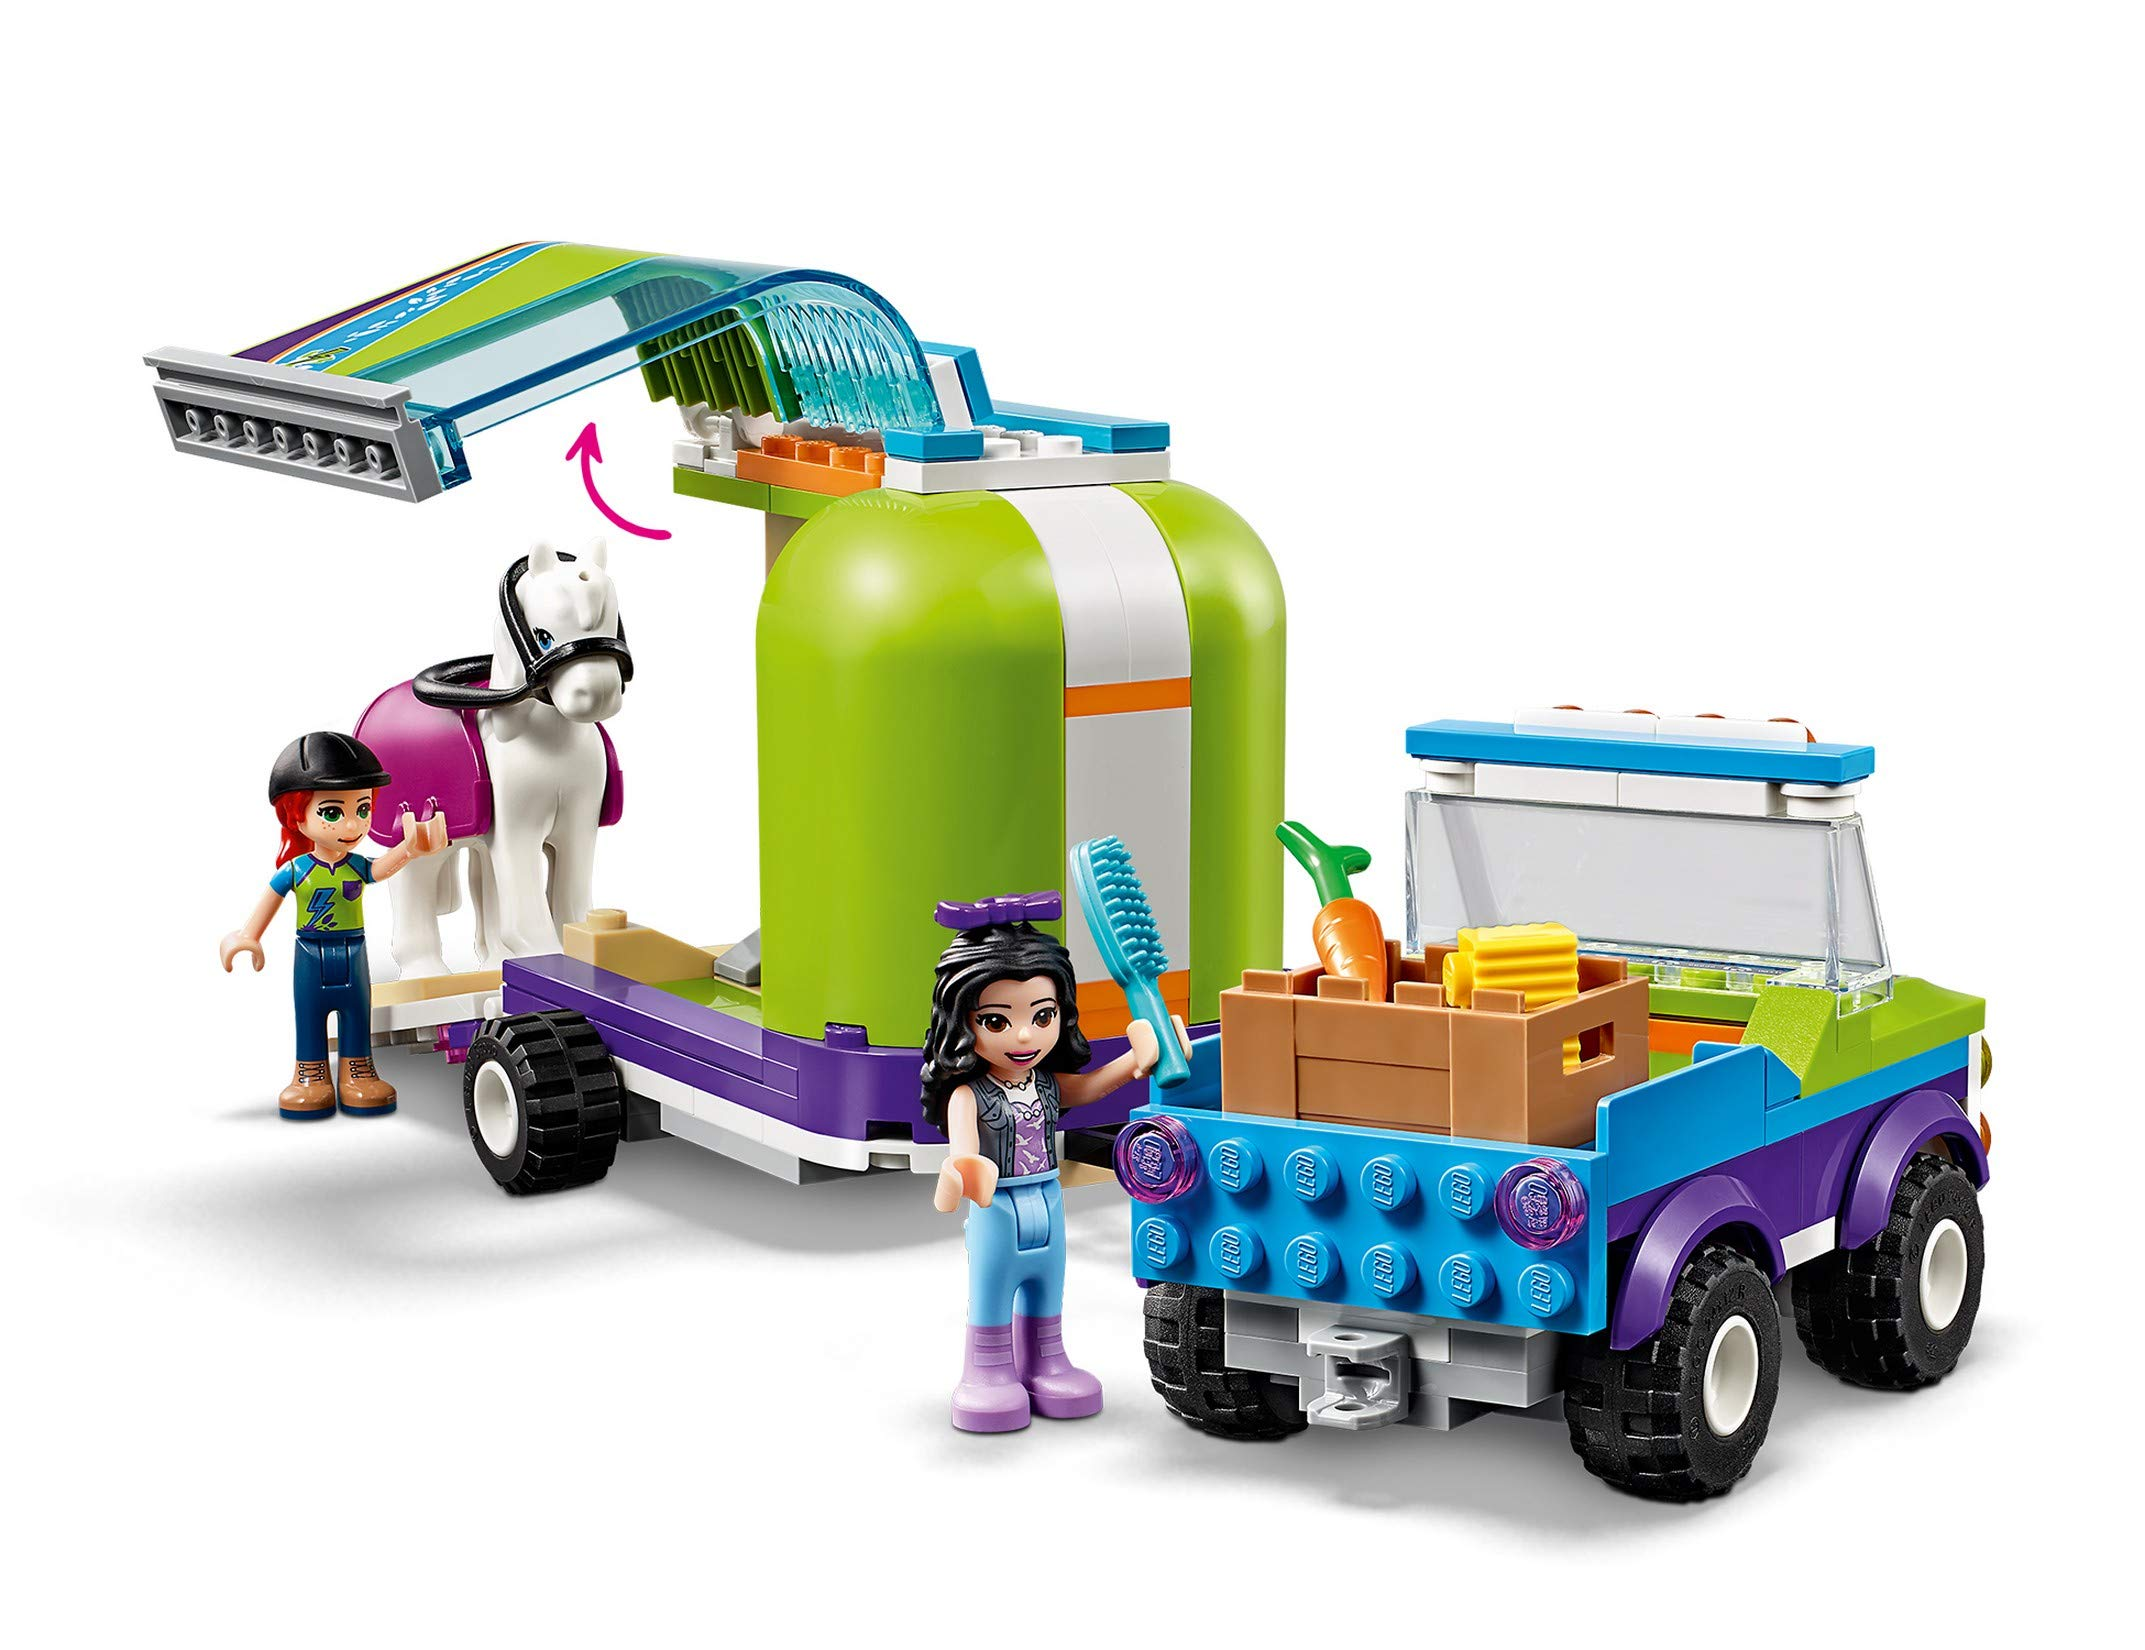 LEGO - Friends Il rimorchio dei cavalli di Mia, Set di Estensione Stabile, Buggy 4x4, Mini-doll Mia ed Emma, Idea Regalo… 4 spesavip